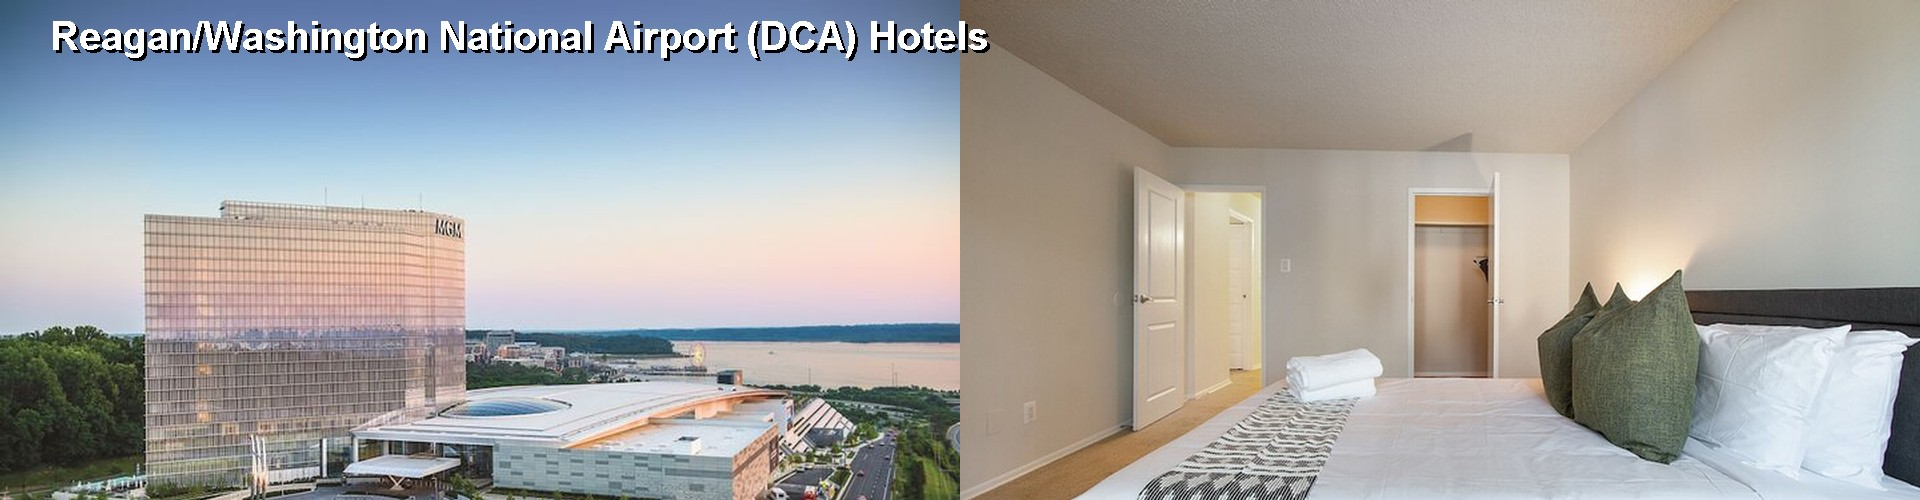 55 Hotels Near Reagan Washington National Airport Dca Dc